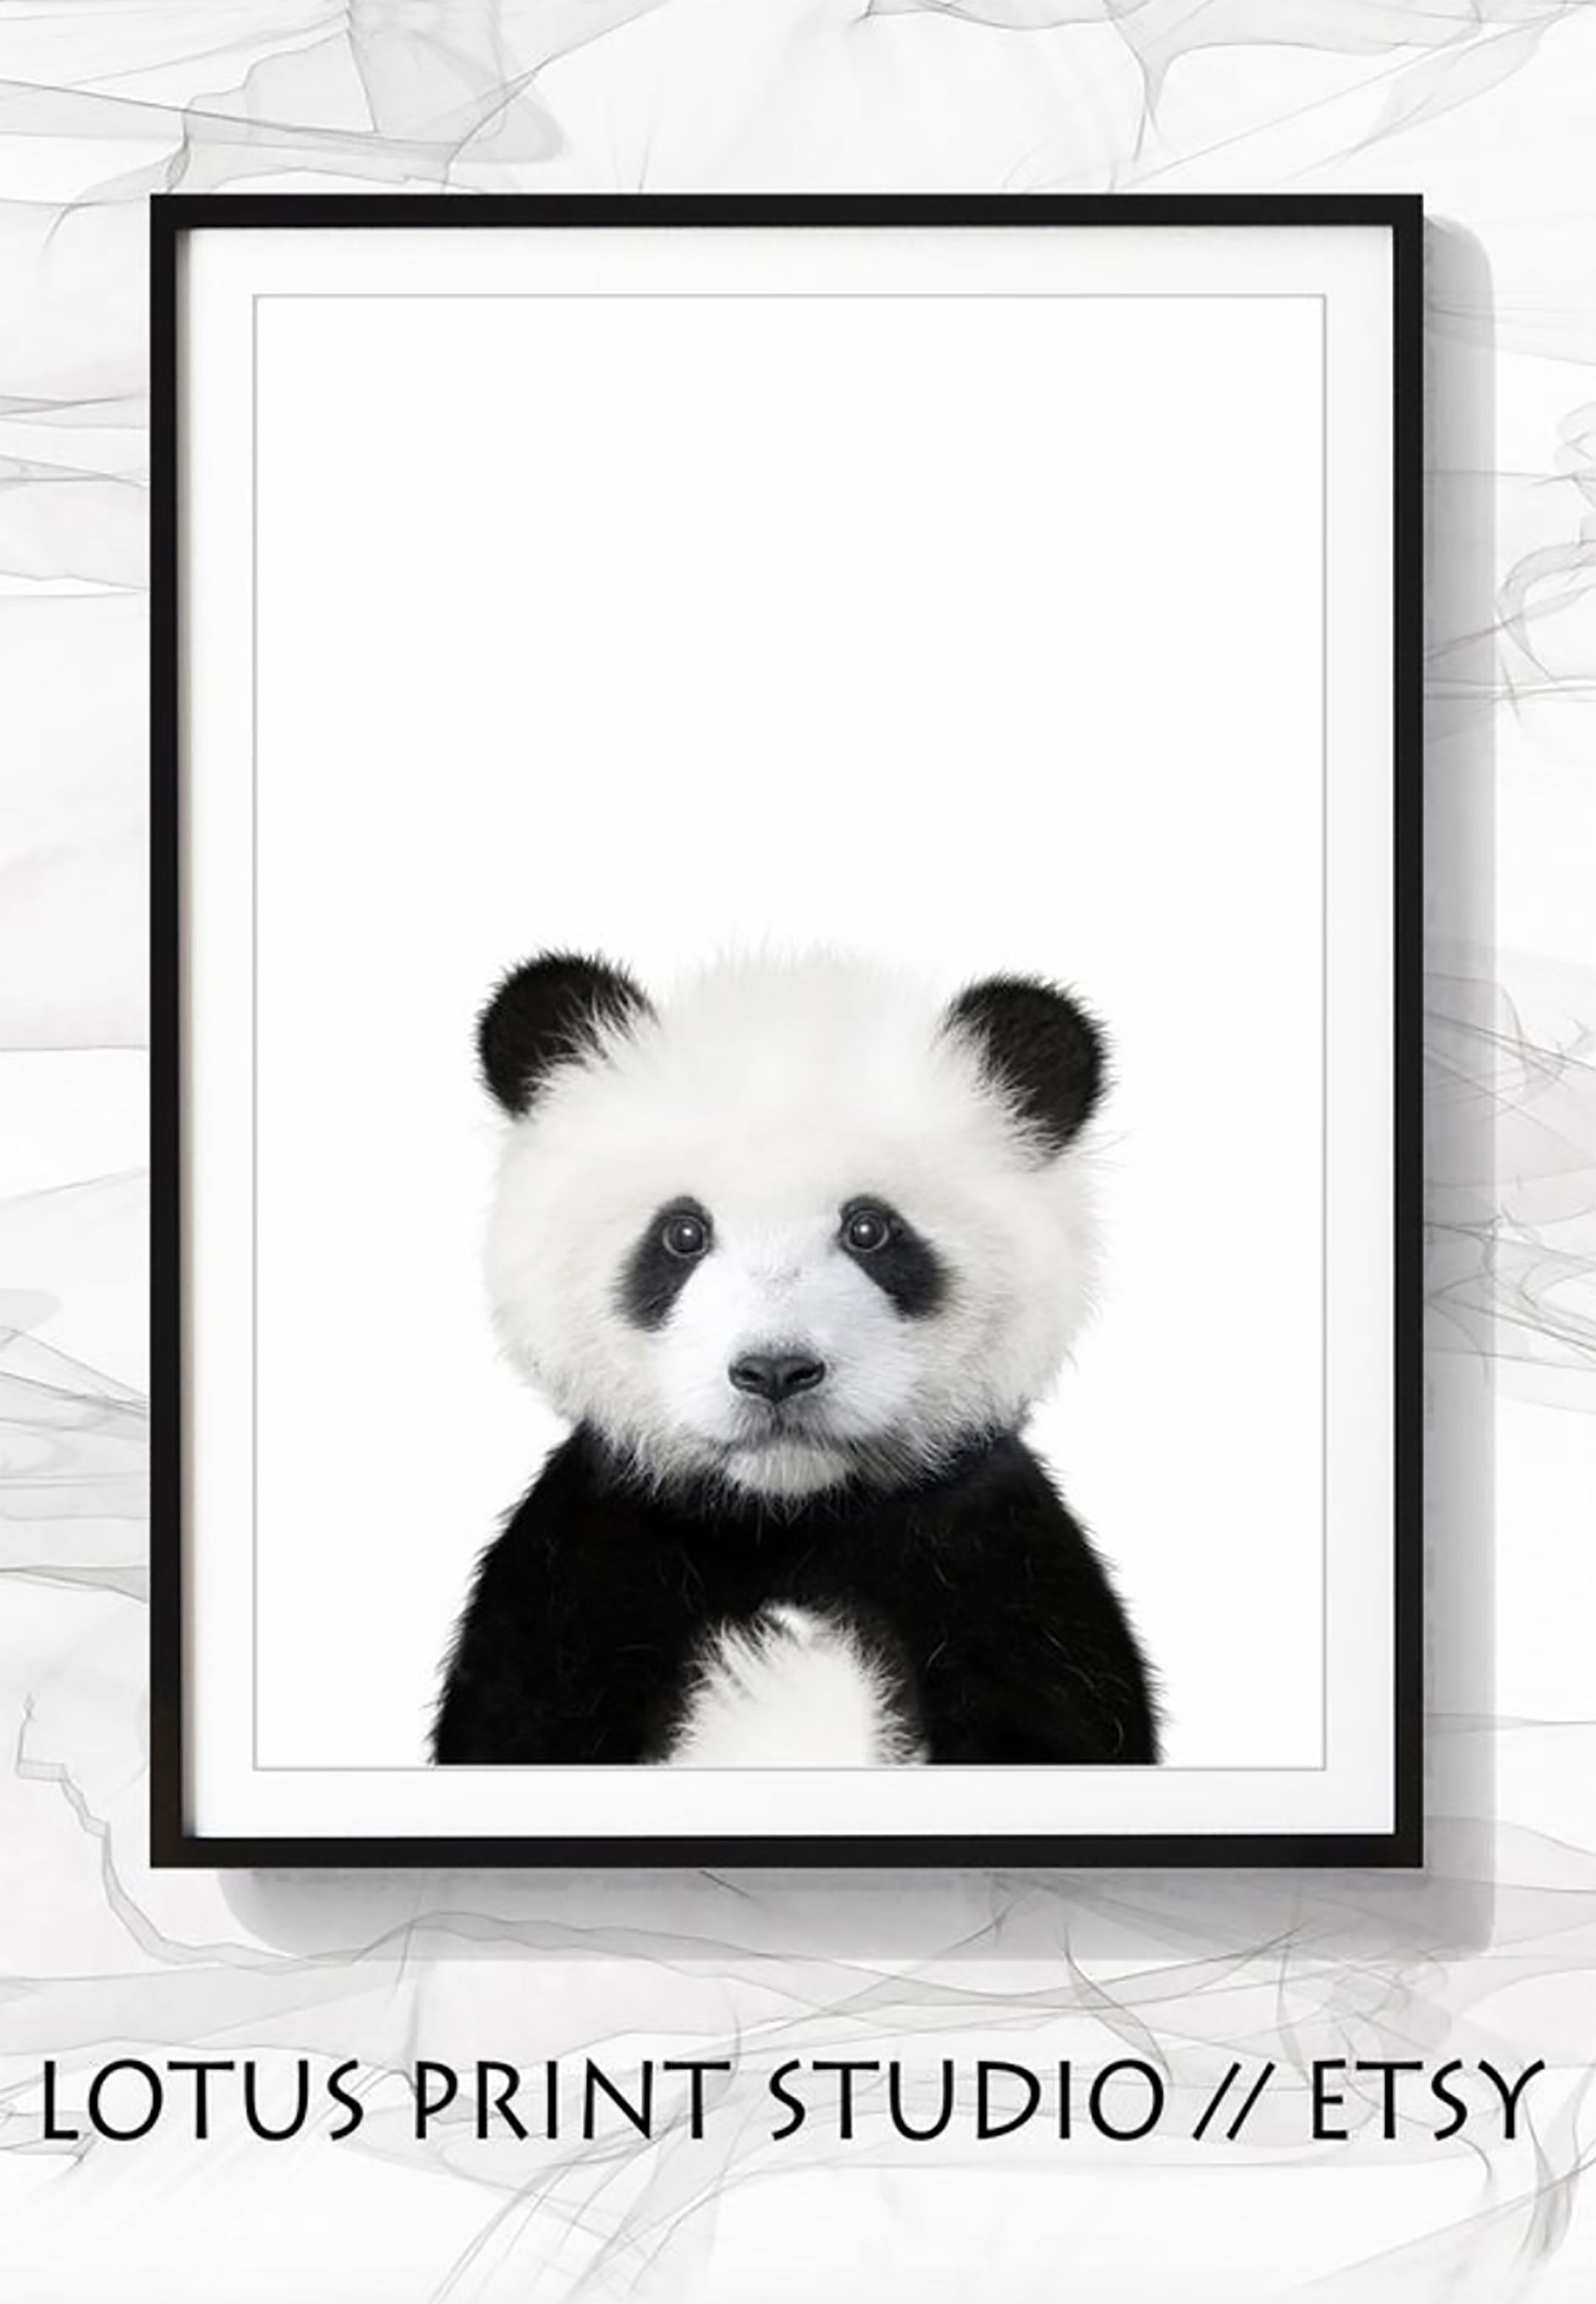 Panda Bear Print, Woodland Animal, DIGITAL DOWNLOAD, Panda Art, Baby Animal Art, Animal Wall Art, Nursery Decor, Nursery Wall Art, #246 #babypandabears